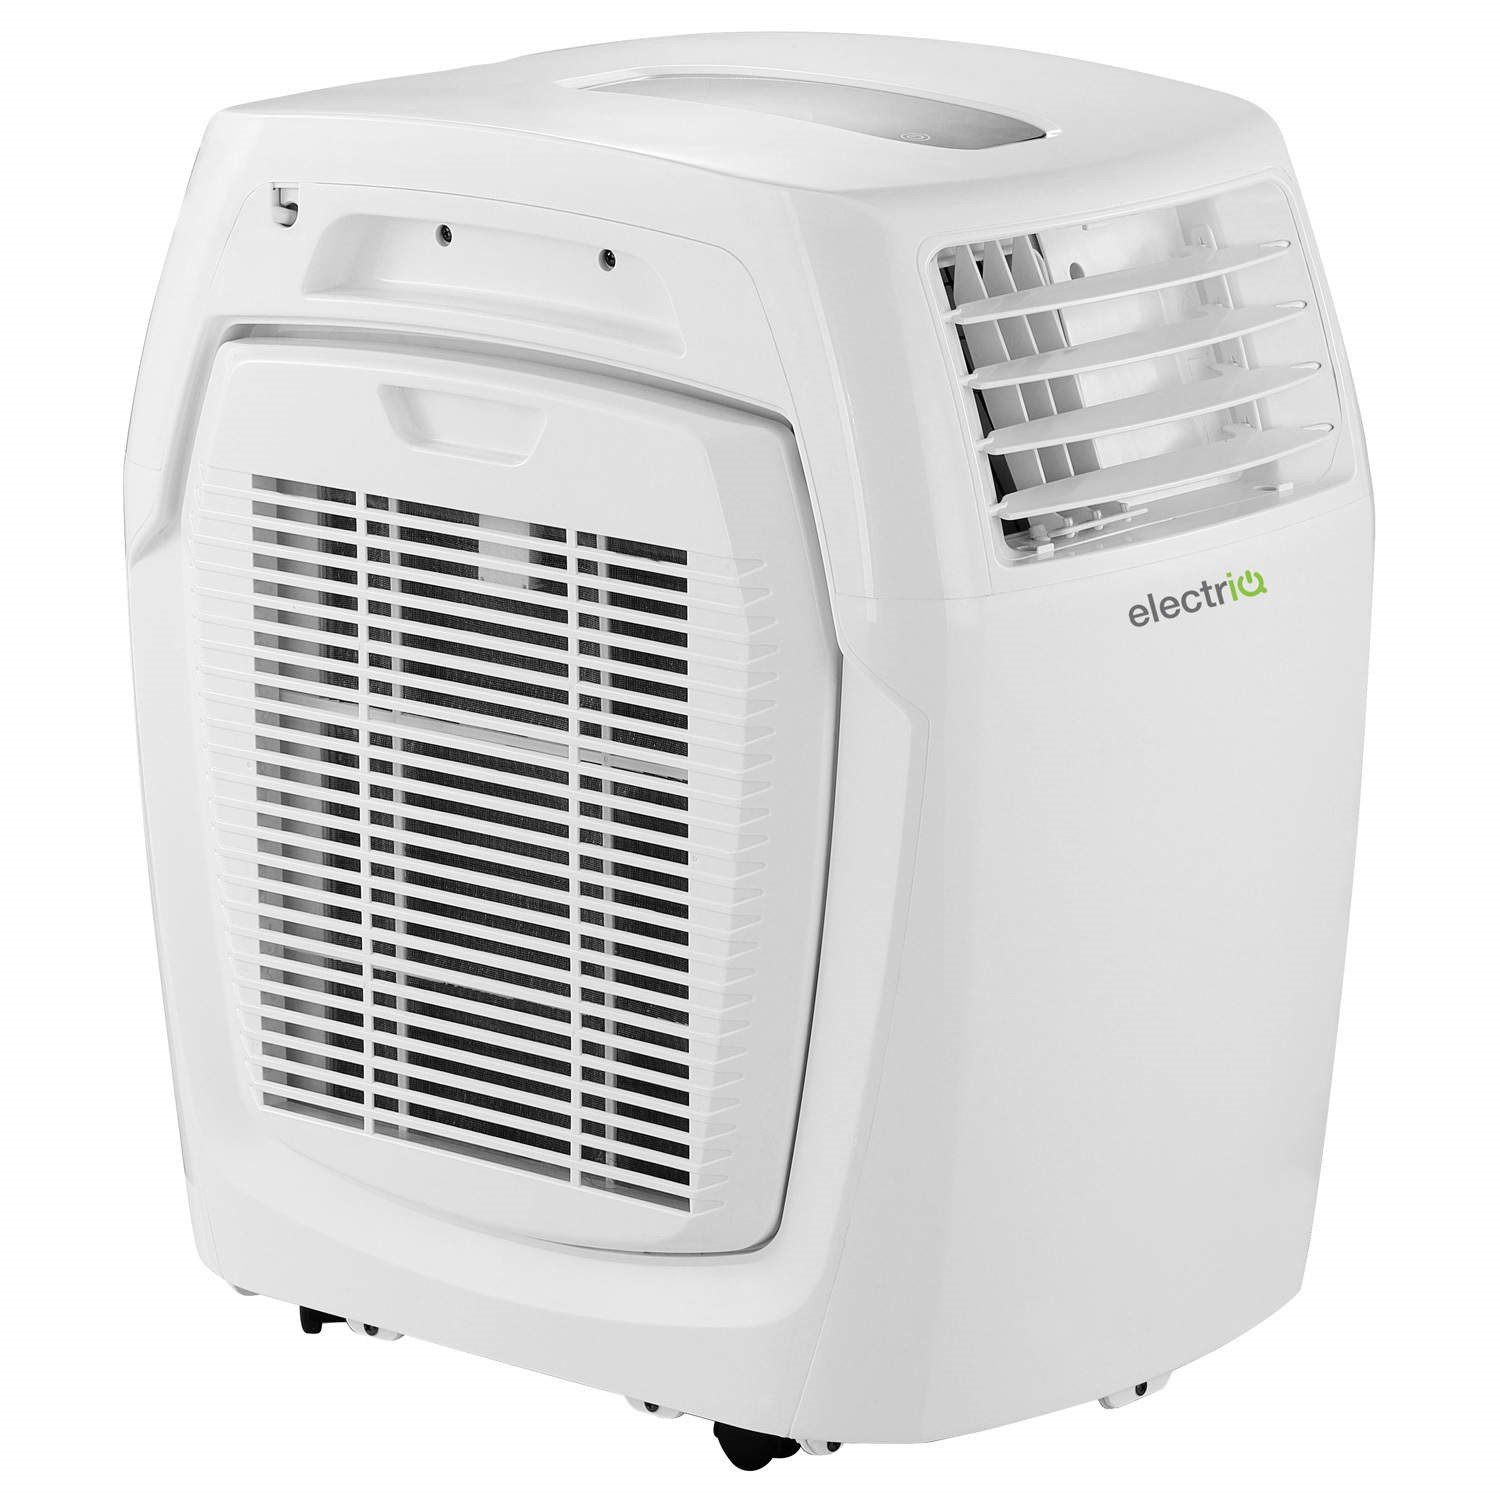 GRADE A1 - electriQ 15000 BTU 4 4 kW Compact Portable Air Conditioner with  Heat Pump for Rooms up to 40 sqm